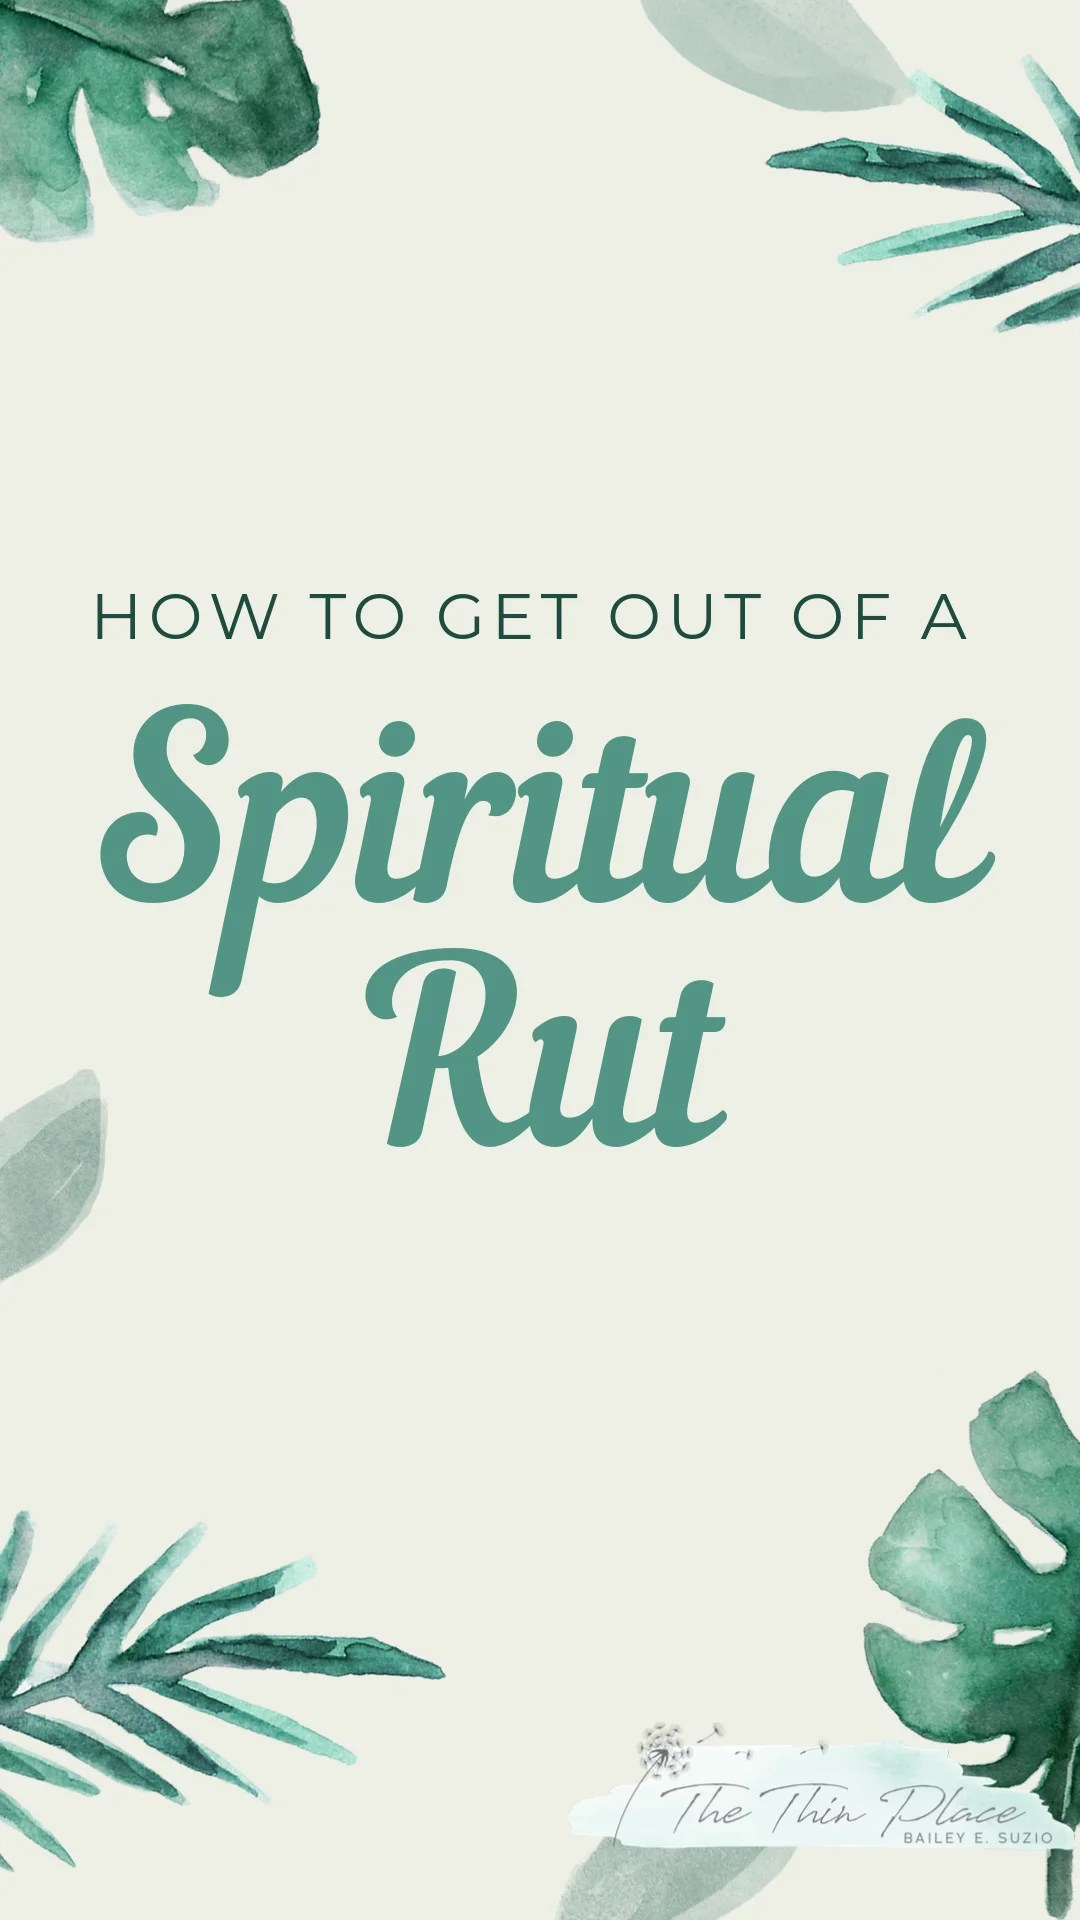 How to get out of a spiritual rut and build a strong Christian faith? #faith #christianliving #devotinal #christianwomen #spiritualrut #christianliving #biblereading #prayer #fasting #churchlife #church #encouragement #christianencouragement